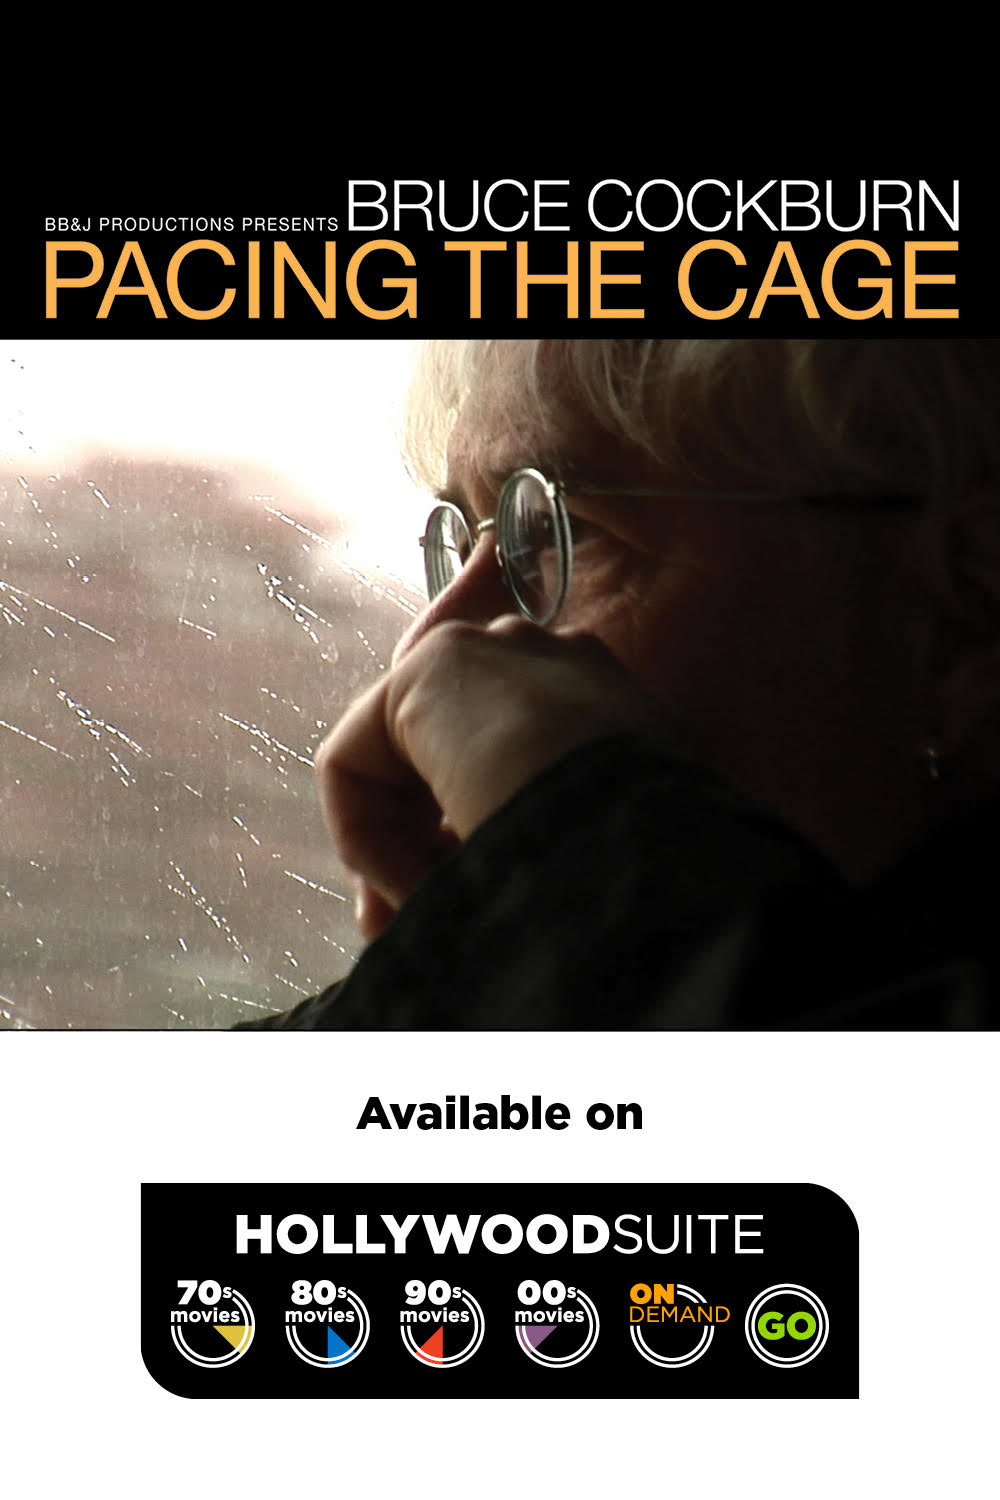 Pacing The Cage documentary tv screening